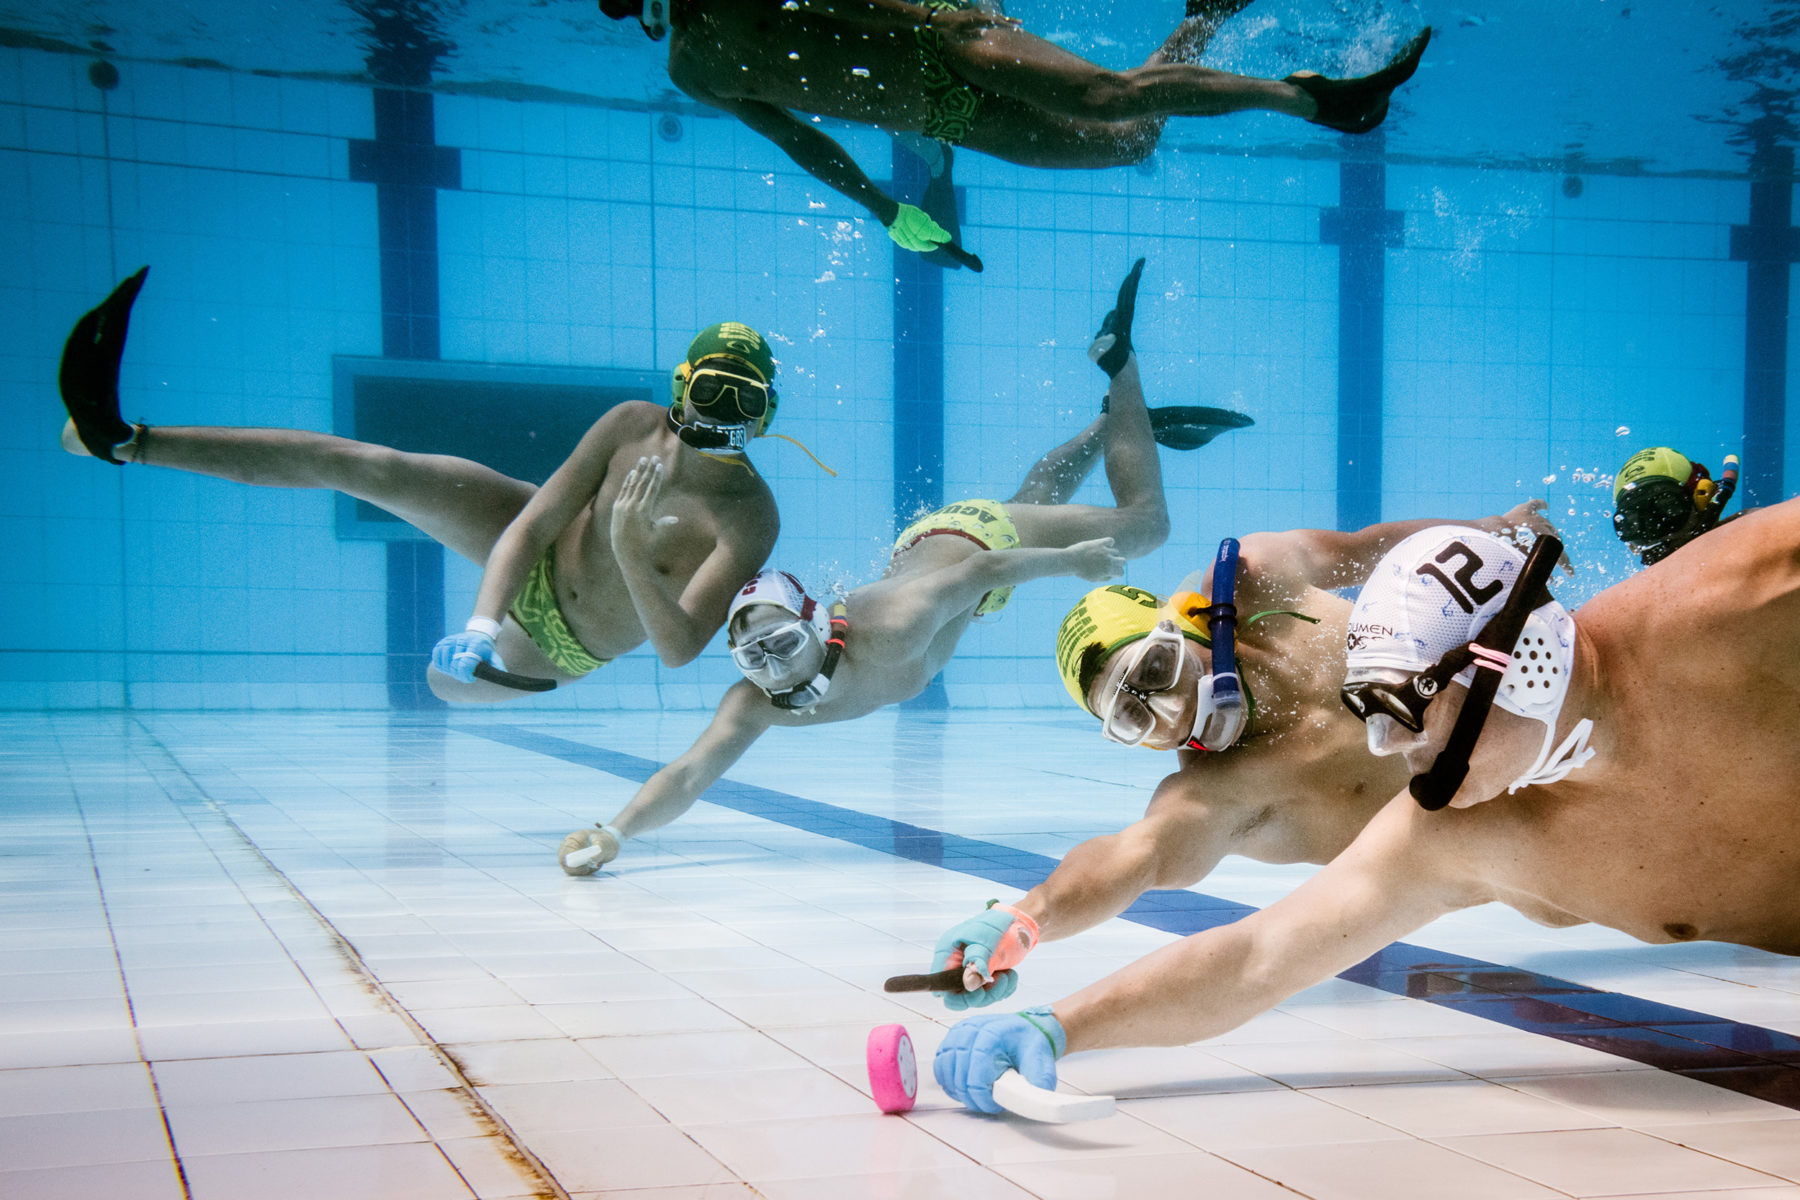 As in Germany, underwater hockey is a niche sport in Colombia. One reason for this: Only a few swimming pools are suitable for playing, because in many of them the tiles are laid too sloppily, and the puck would damage them.